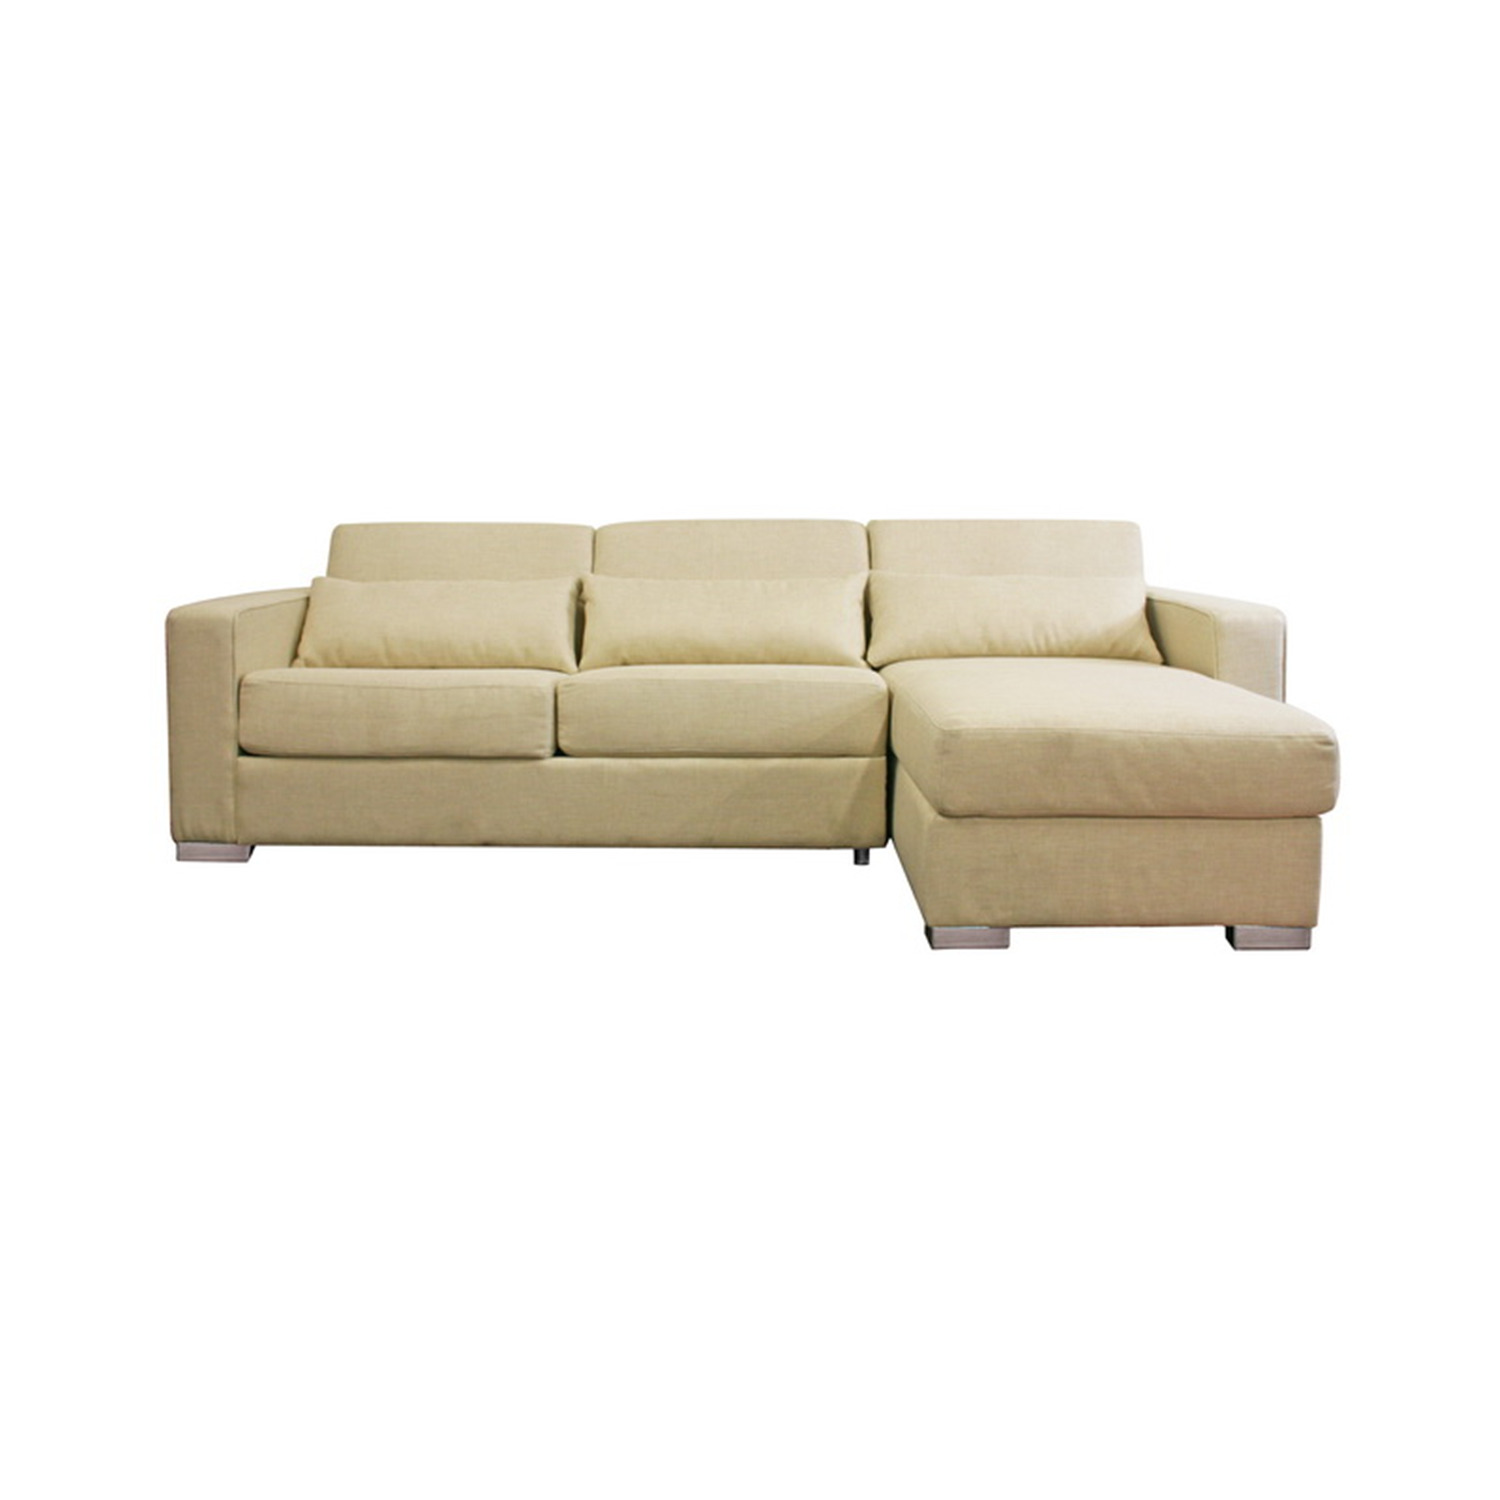 Incredible Beeson Fabric Queen Sleeper Chaise Sofa Best Furnitures Ncnpc Chair Design For Home Ncnpcorg